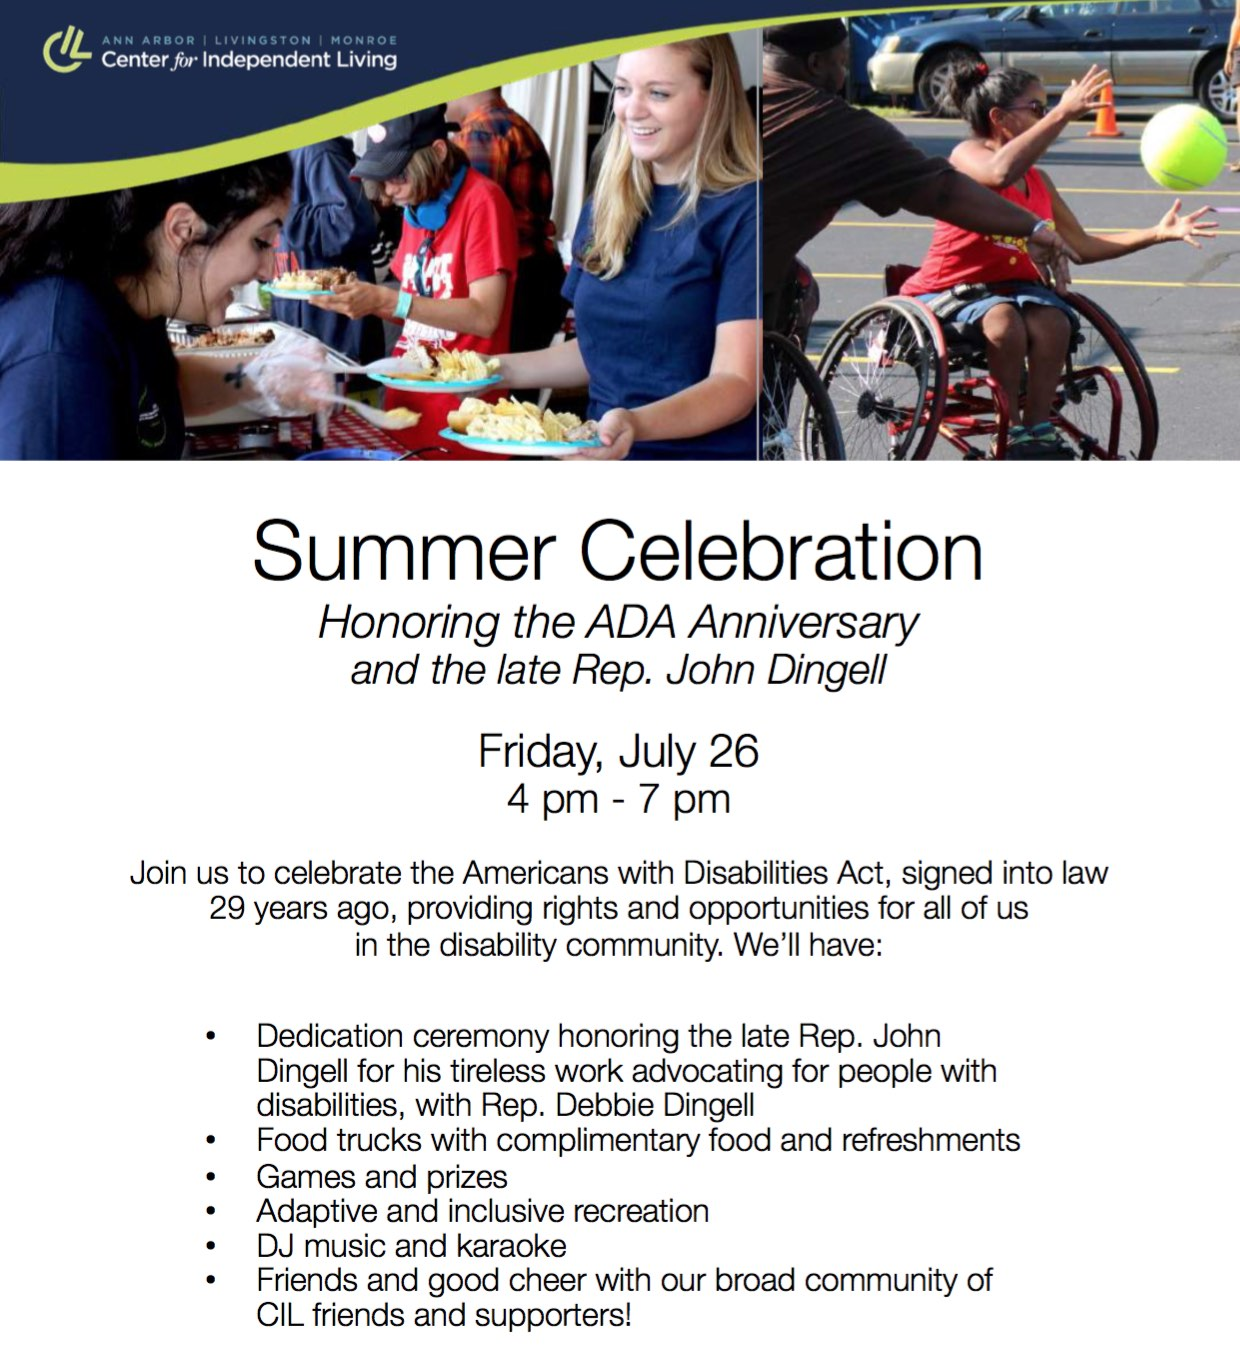 Join us for the Summer Celebration July 26!